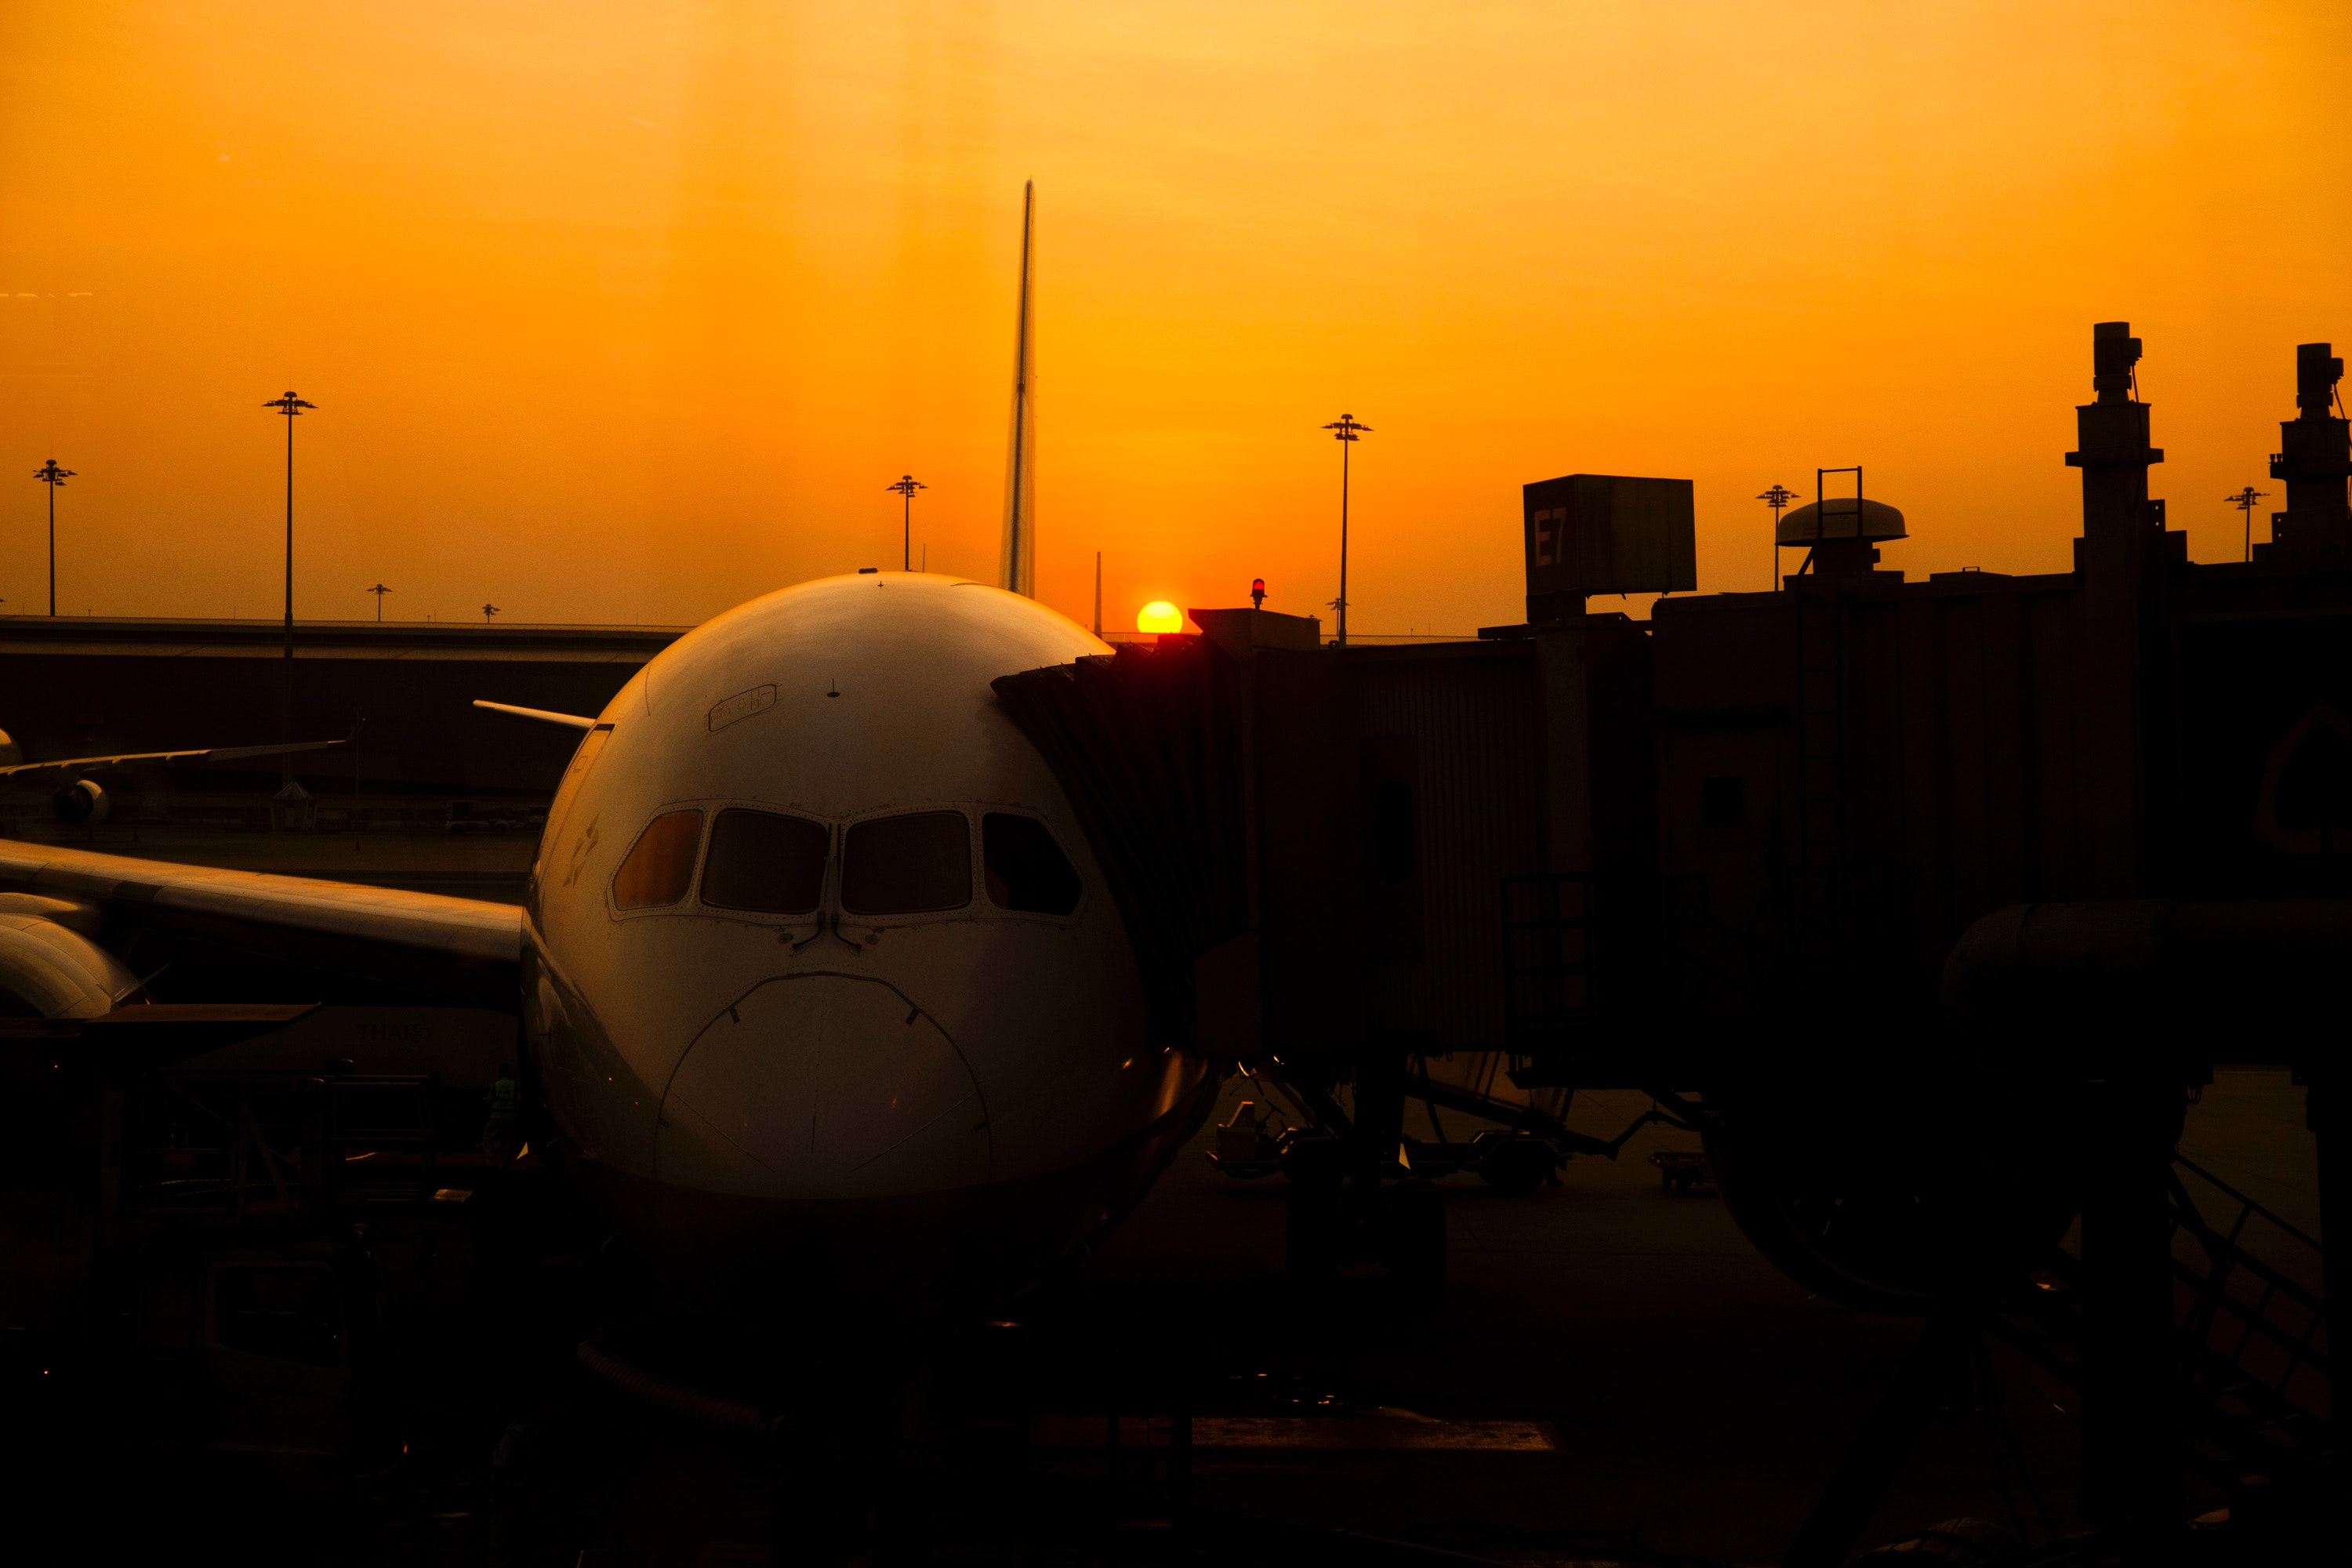 Silhouette of airplane on airport during sunset photo